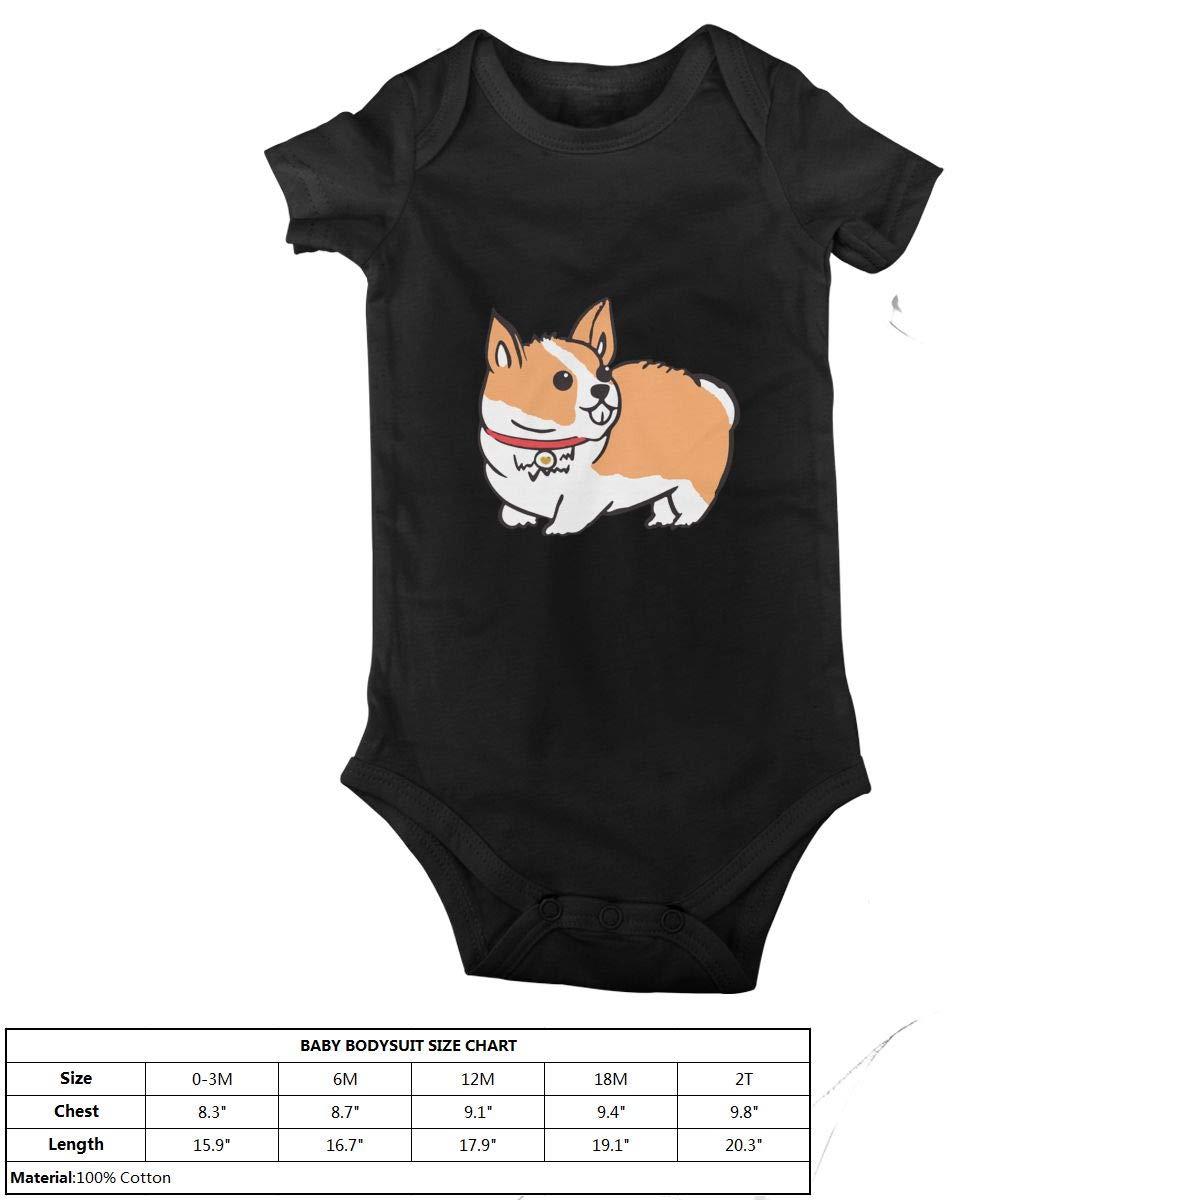 GXLLLW Level 1 Human Cute Unisex Baby Body Kurzarm Onesies Strampler Outfits Jumpsuit